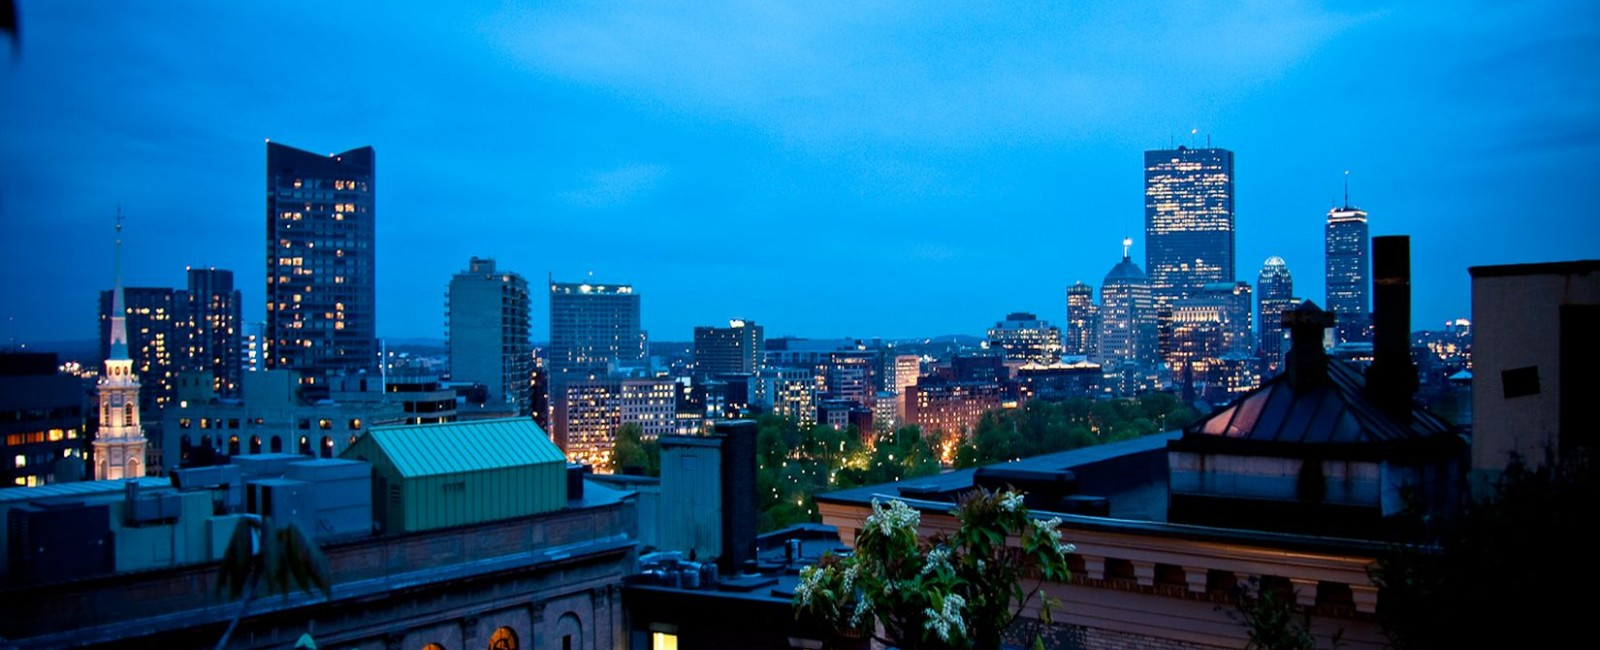 Fifteen Beacon's view from our roof deck overlooking Boston's building after dark.